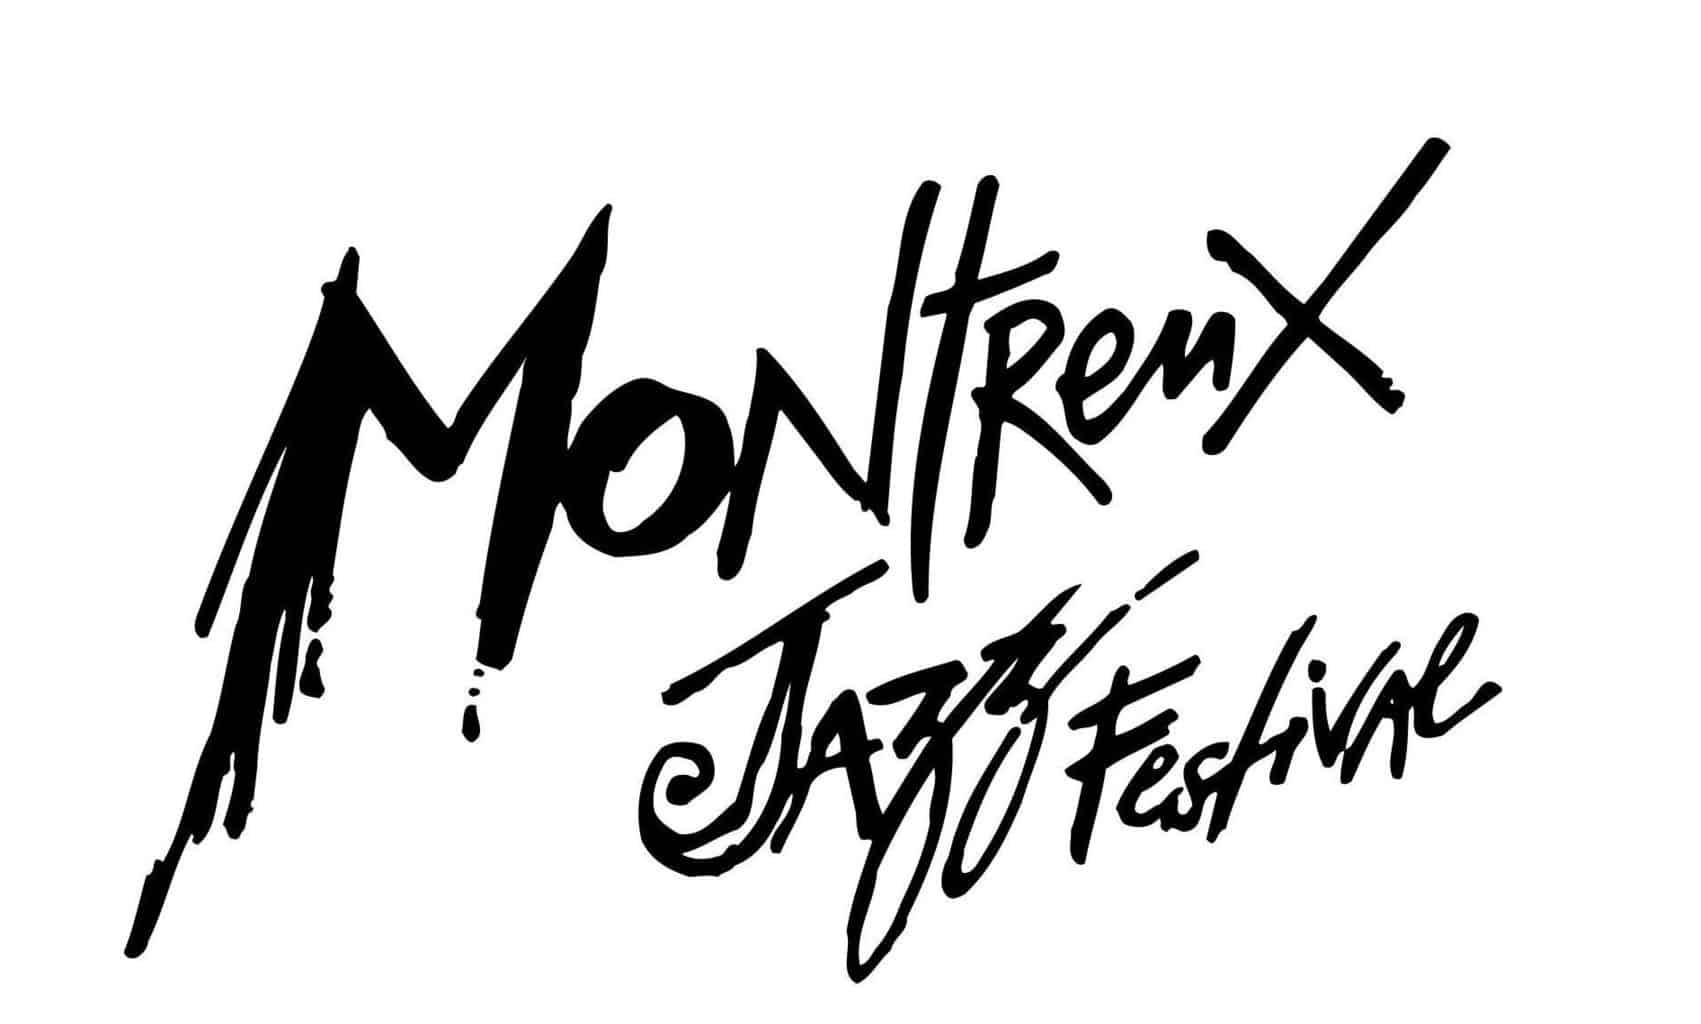 Great Music at the Montreux Jazz Festival